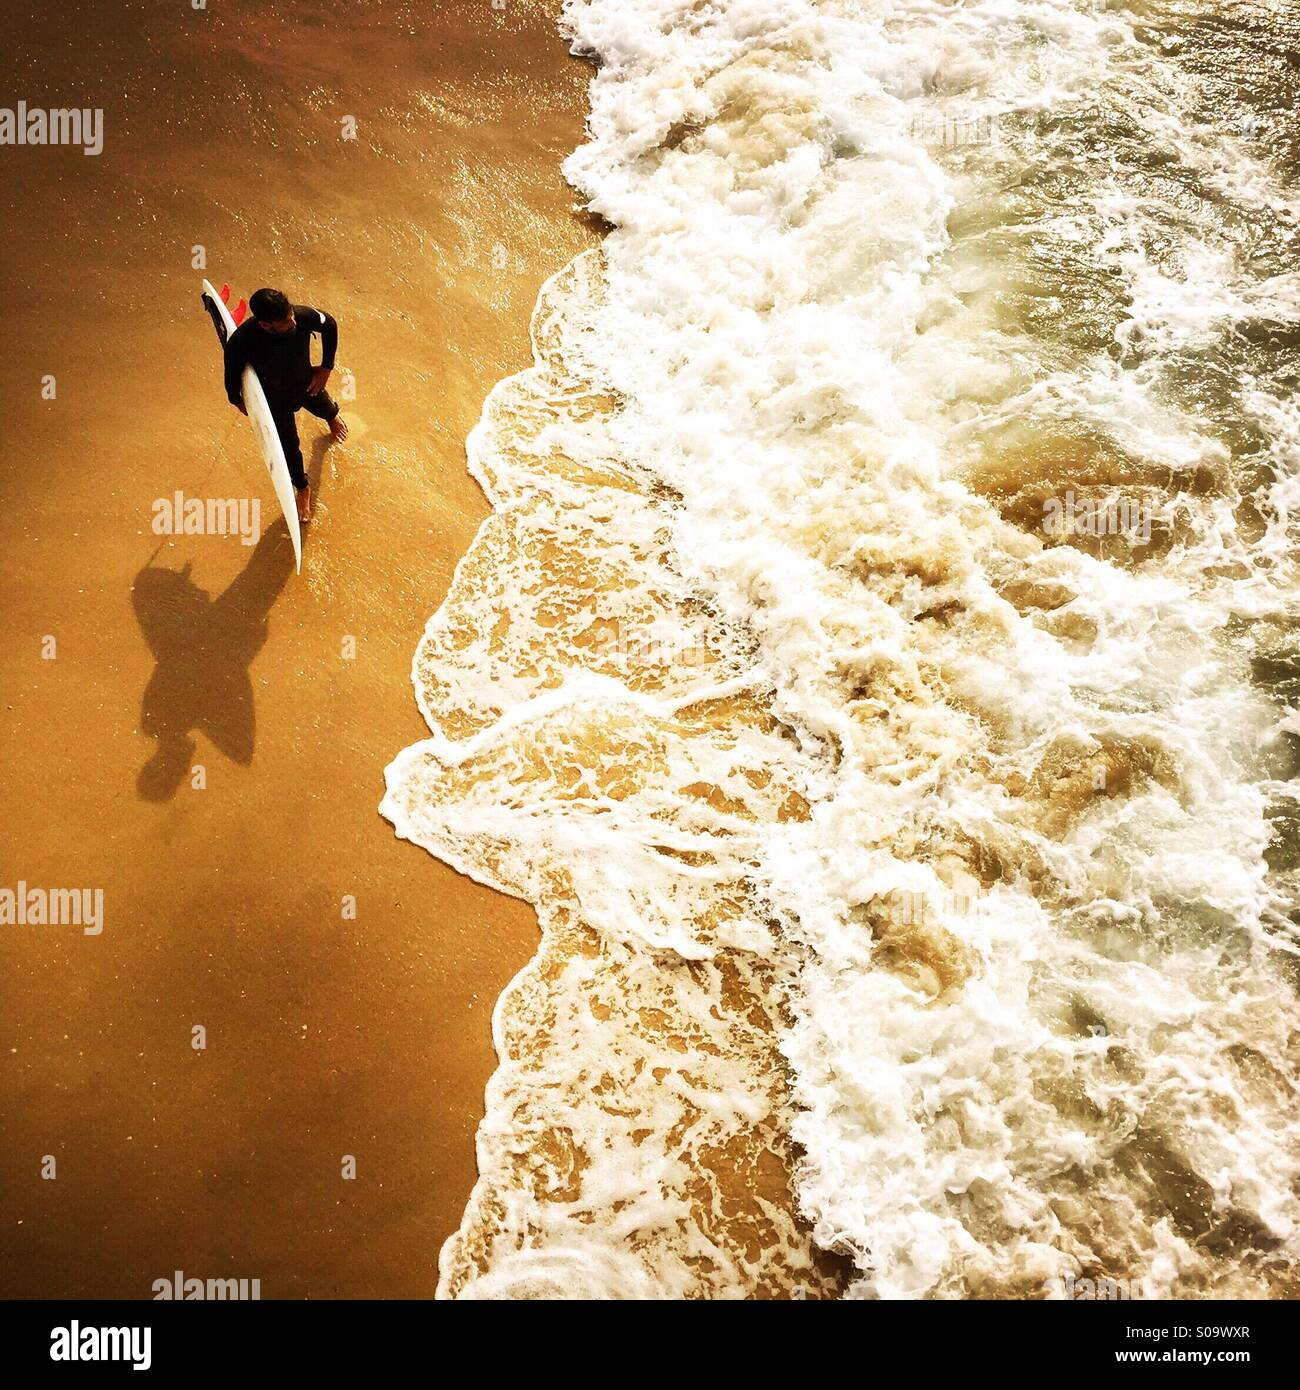 Un internaute attend au rivage pour surfer. Manhattan Beach, Californie, États-Unis. Photo Stock